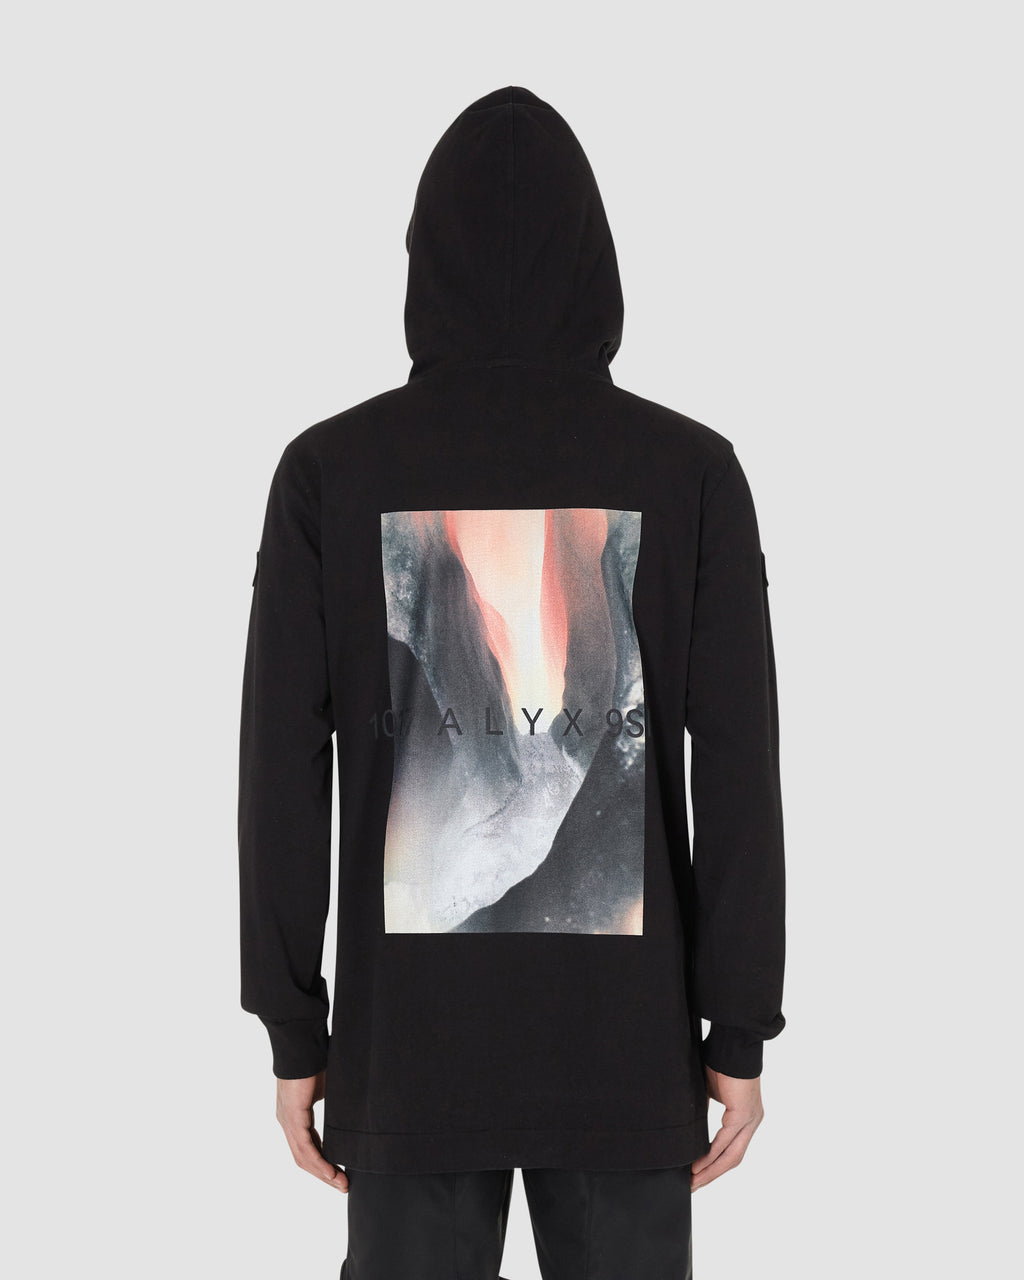 1017 ALYX 9SM | MONCLER HOODED JUMPER | T-Shirt | BLACK, Google Shopping, Man, Moncler, S20, T-Shirts, UNISEX